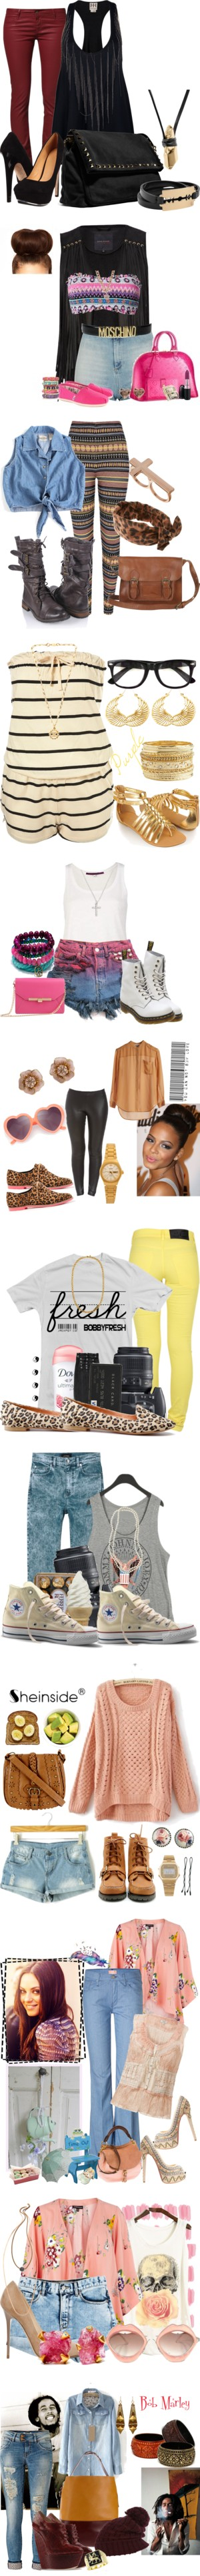 """""""Streets"""" by positivefemtalk ❤ liked on Polyvore"""